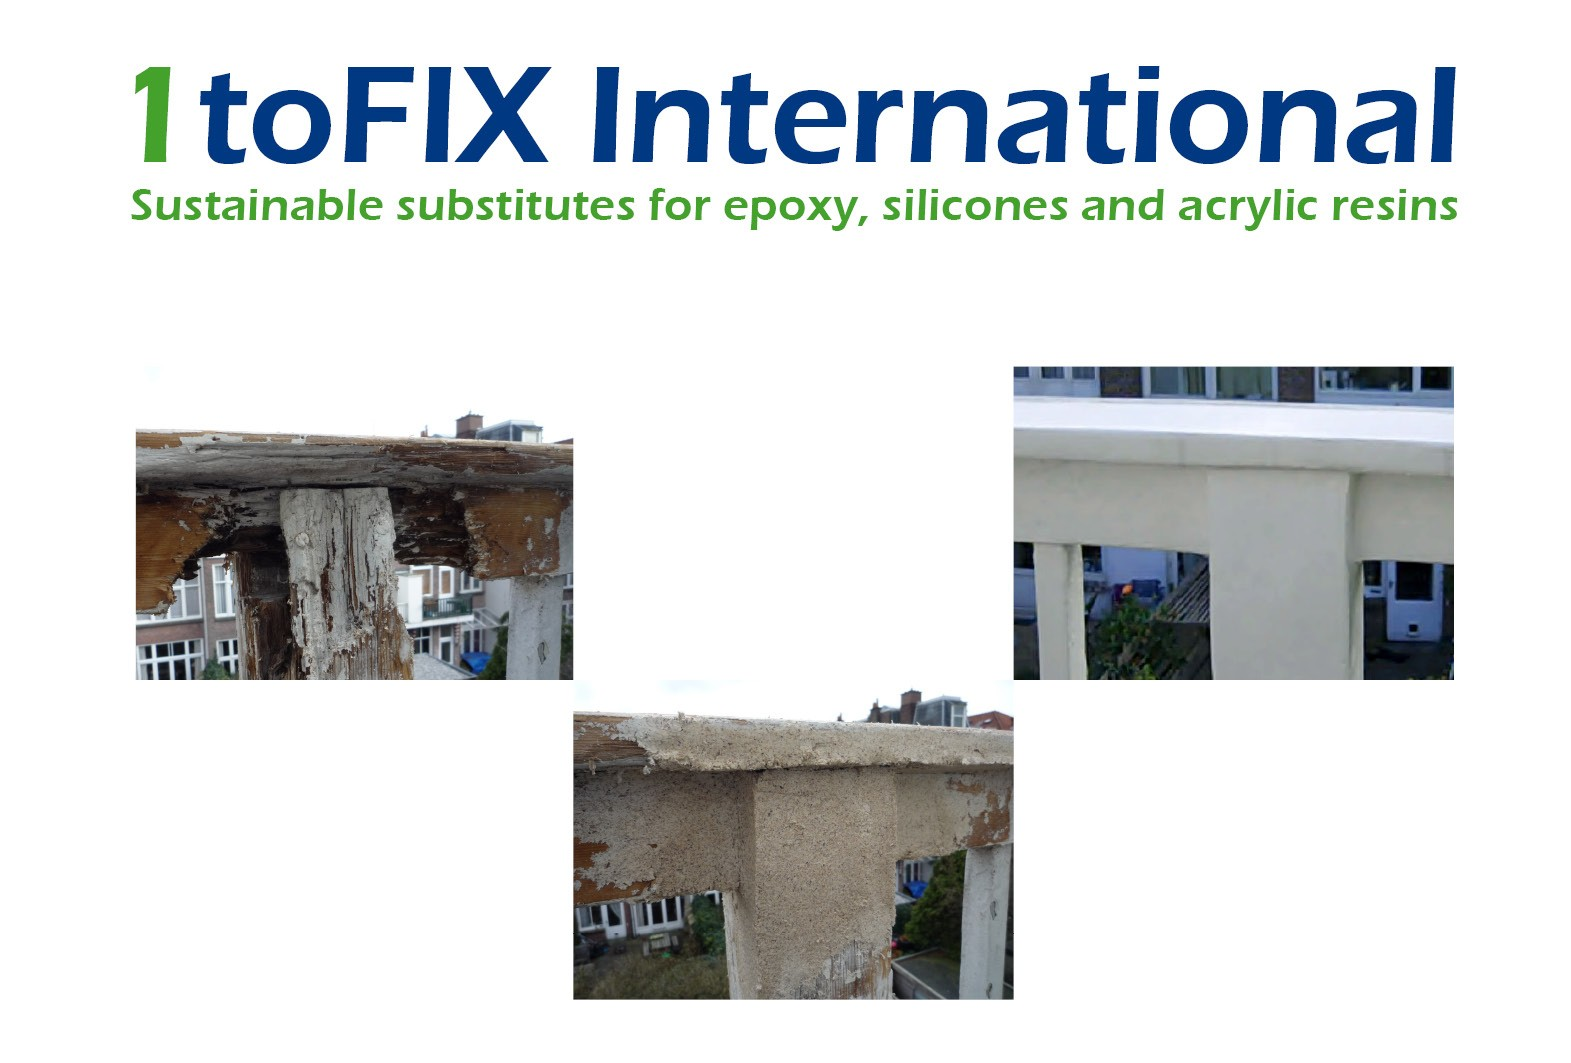 1toFIX International